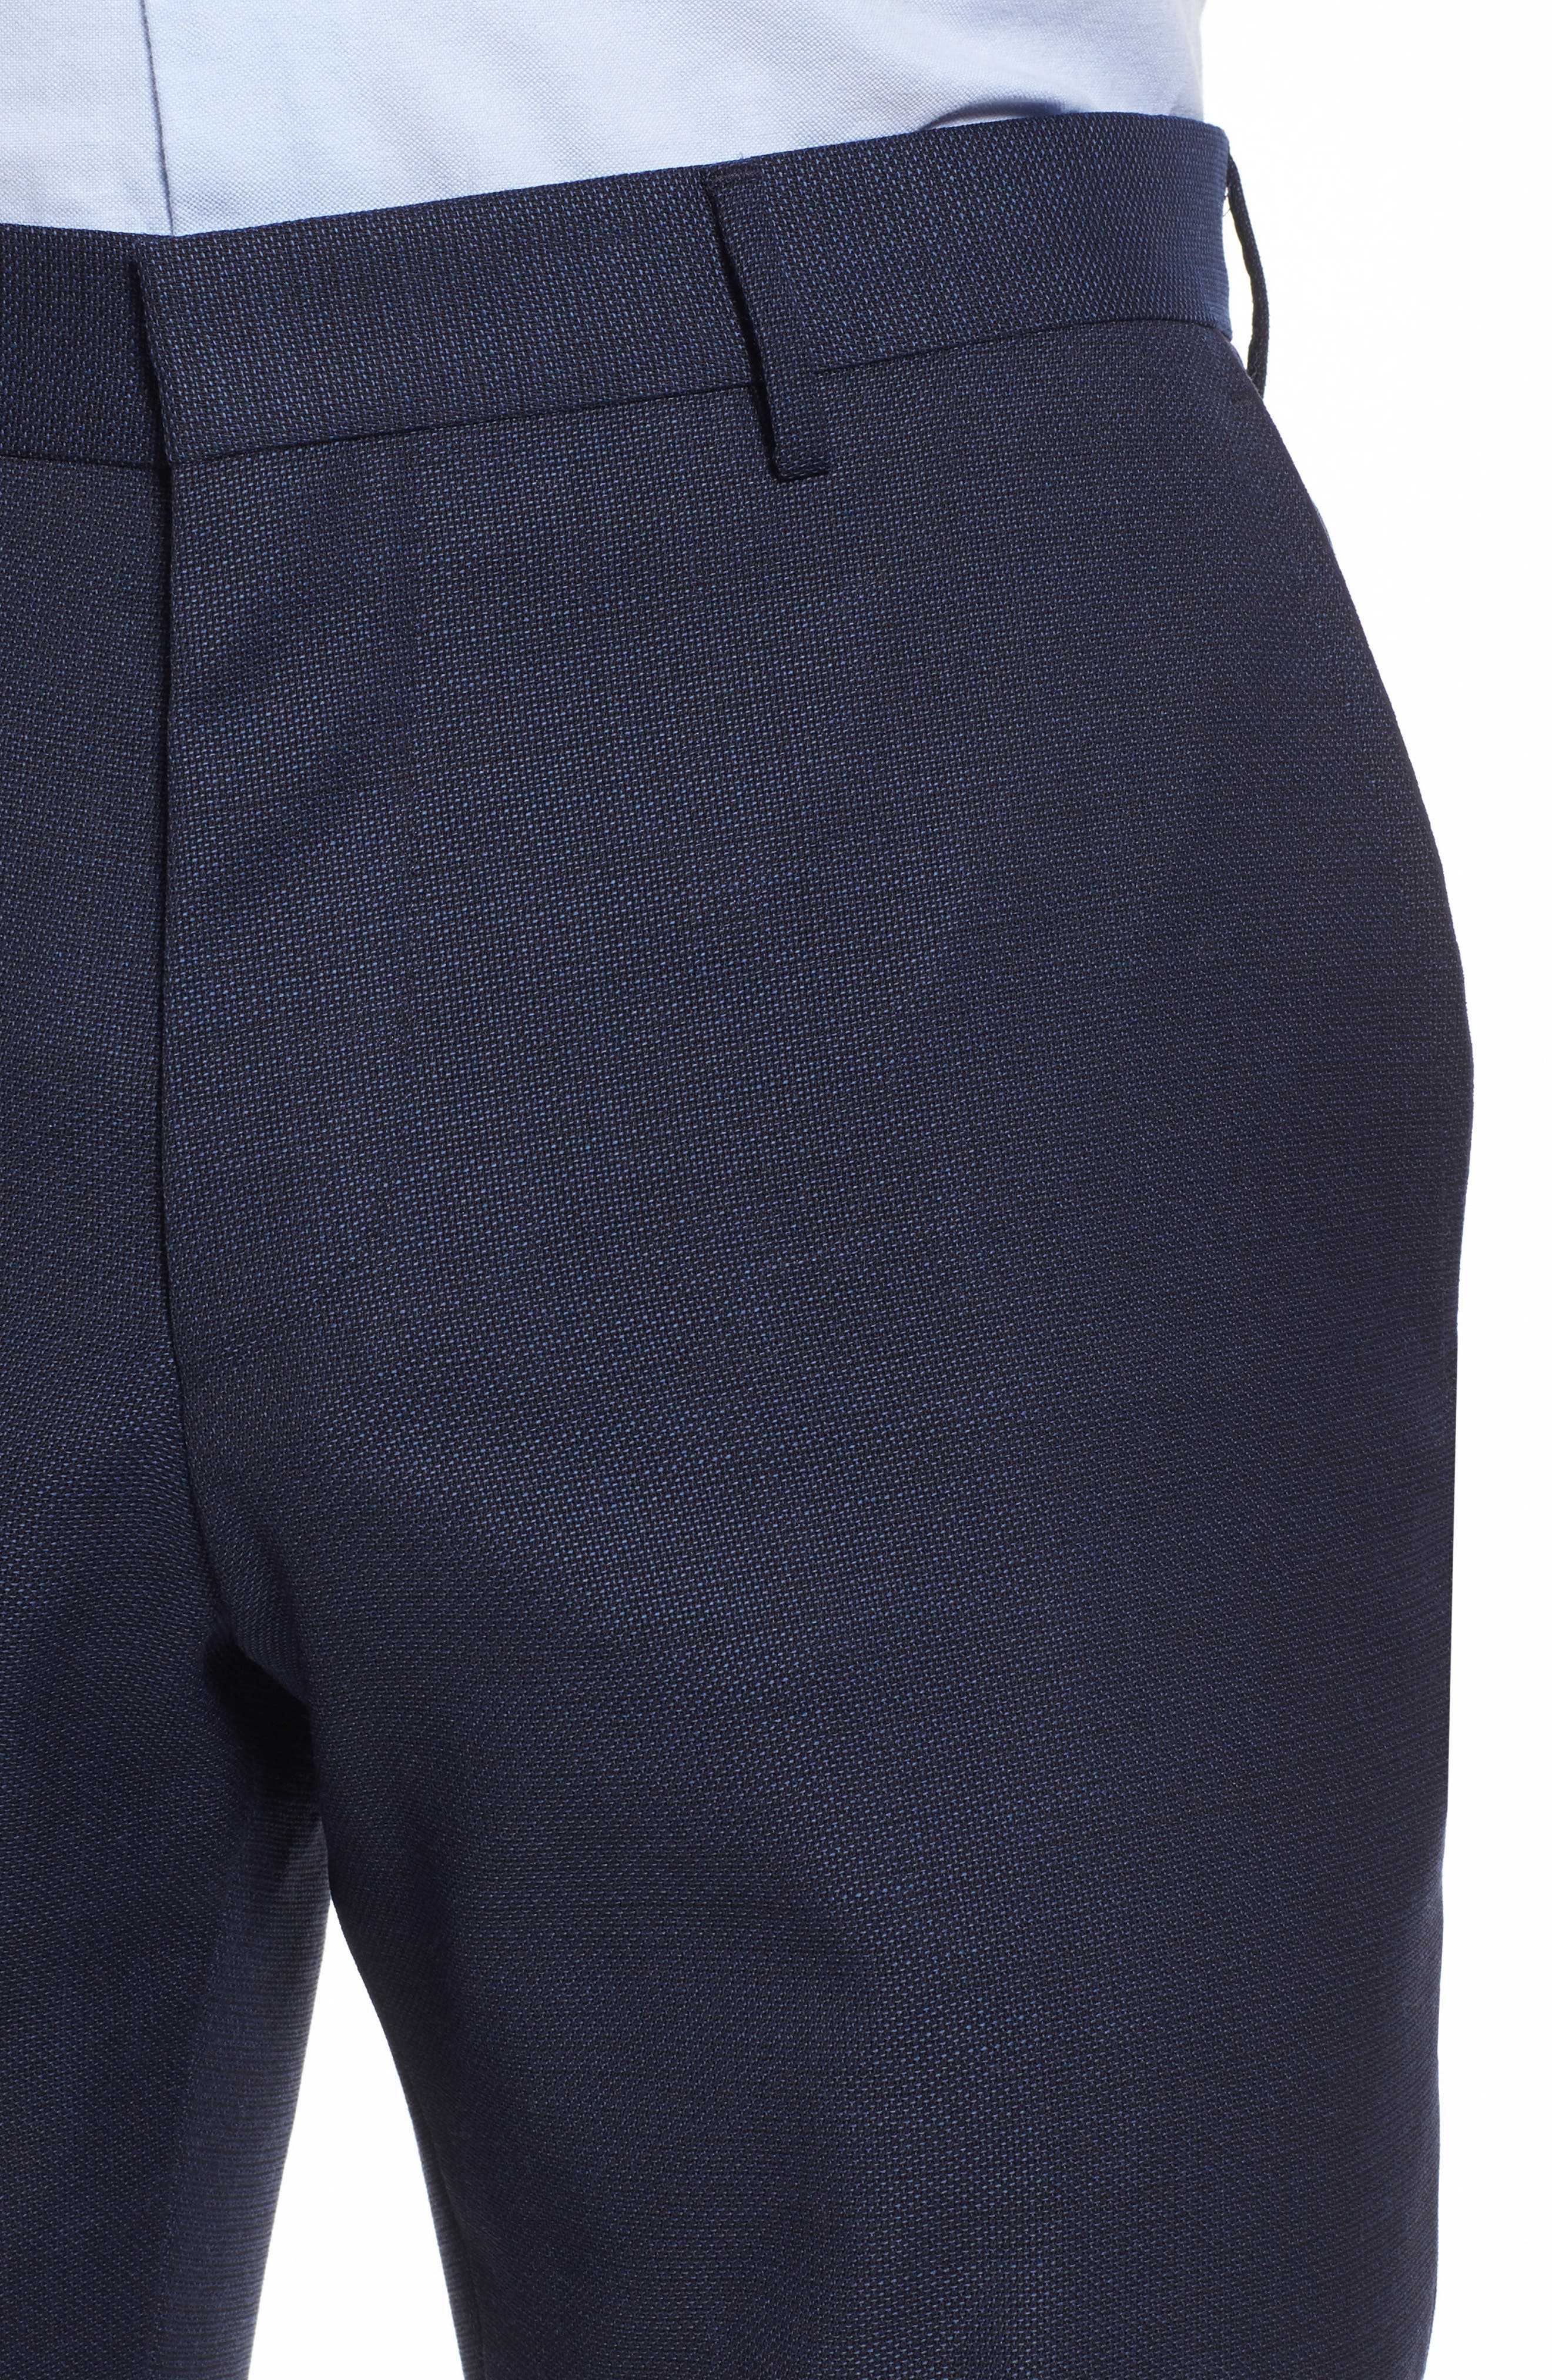 Blake Flat Front Solid Wool Trousers,                             Alternate thumbnail 5, color,                             401